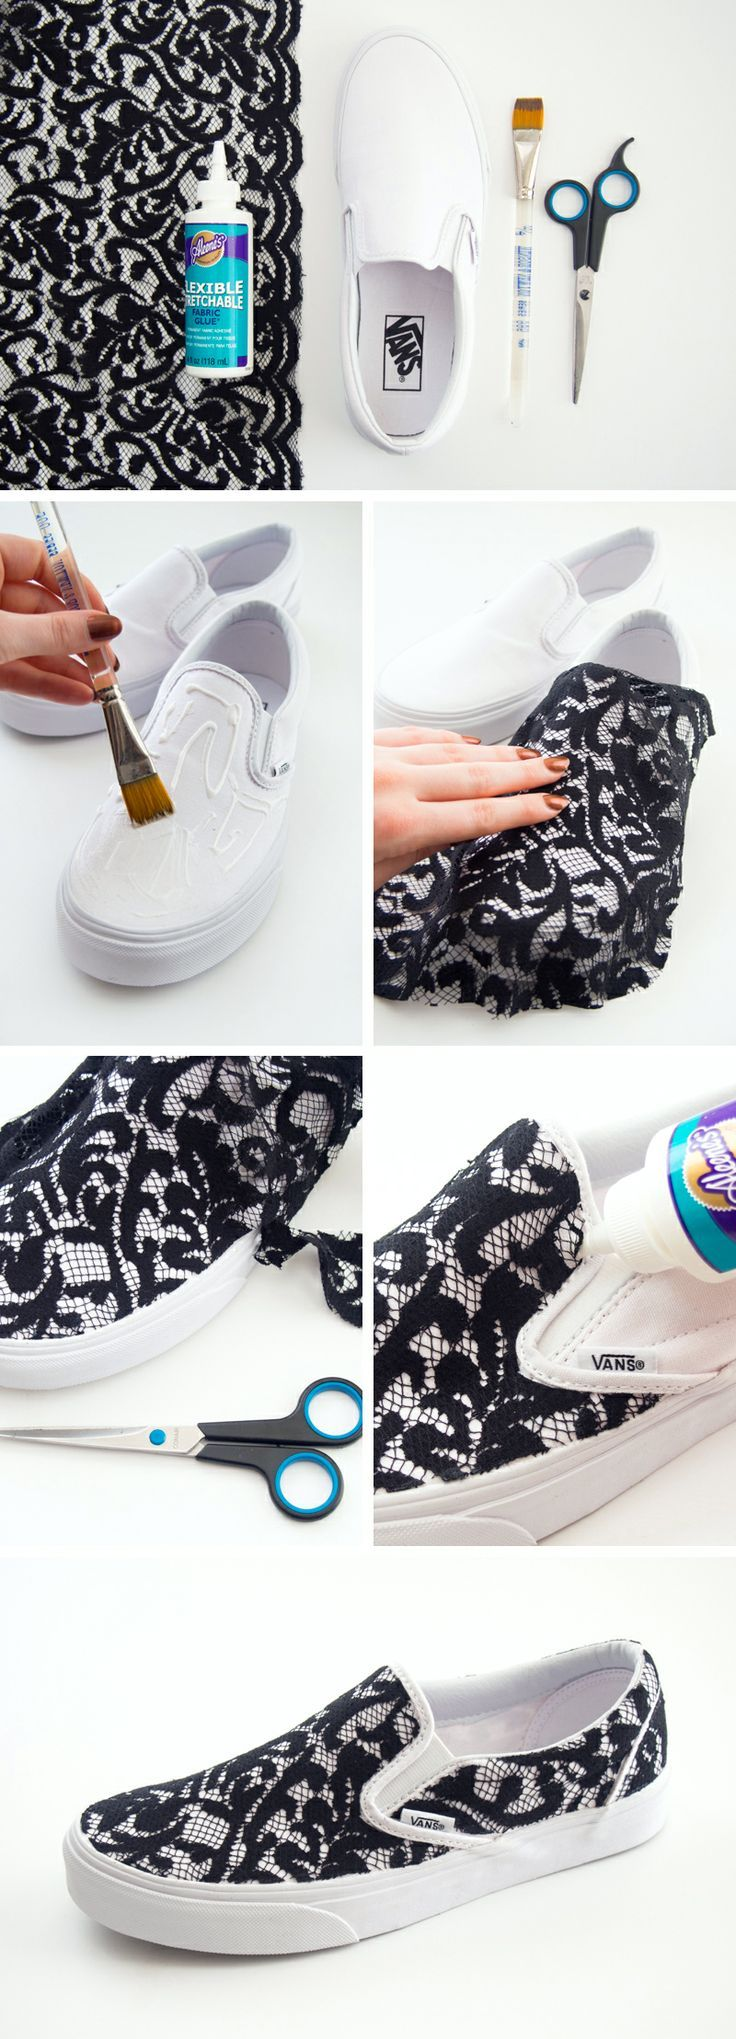 DIY Lace Slip-on Vans Sneakers.